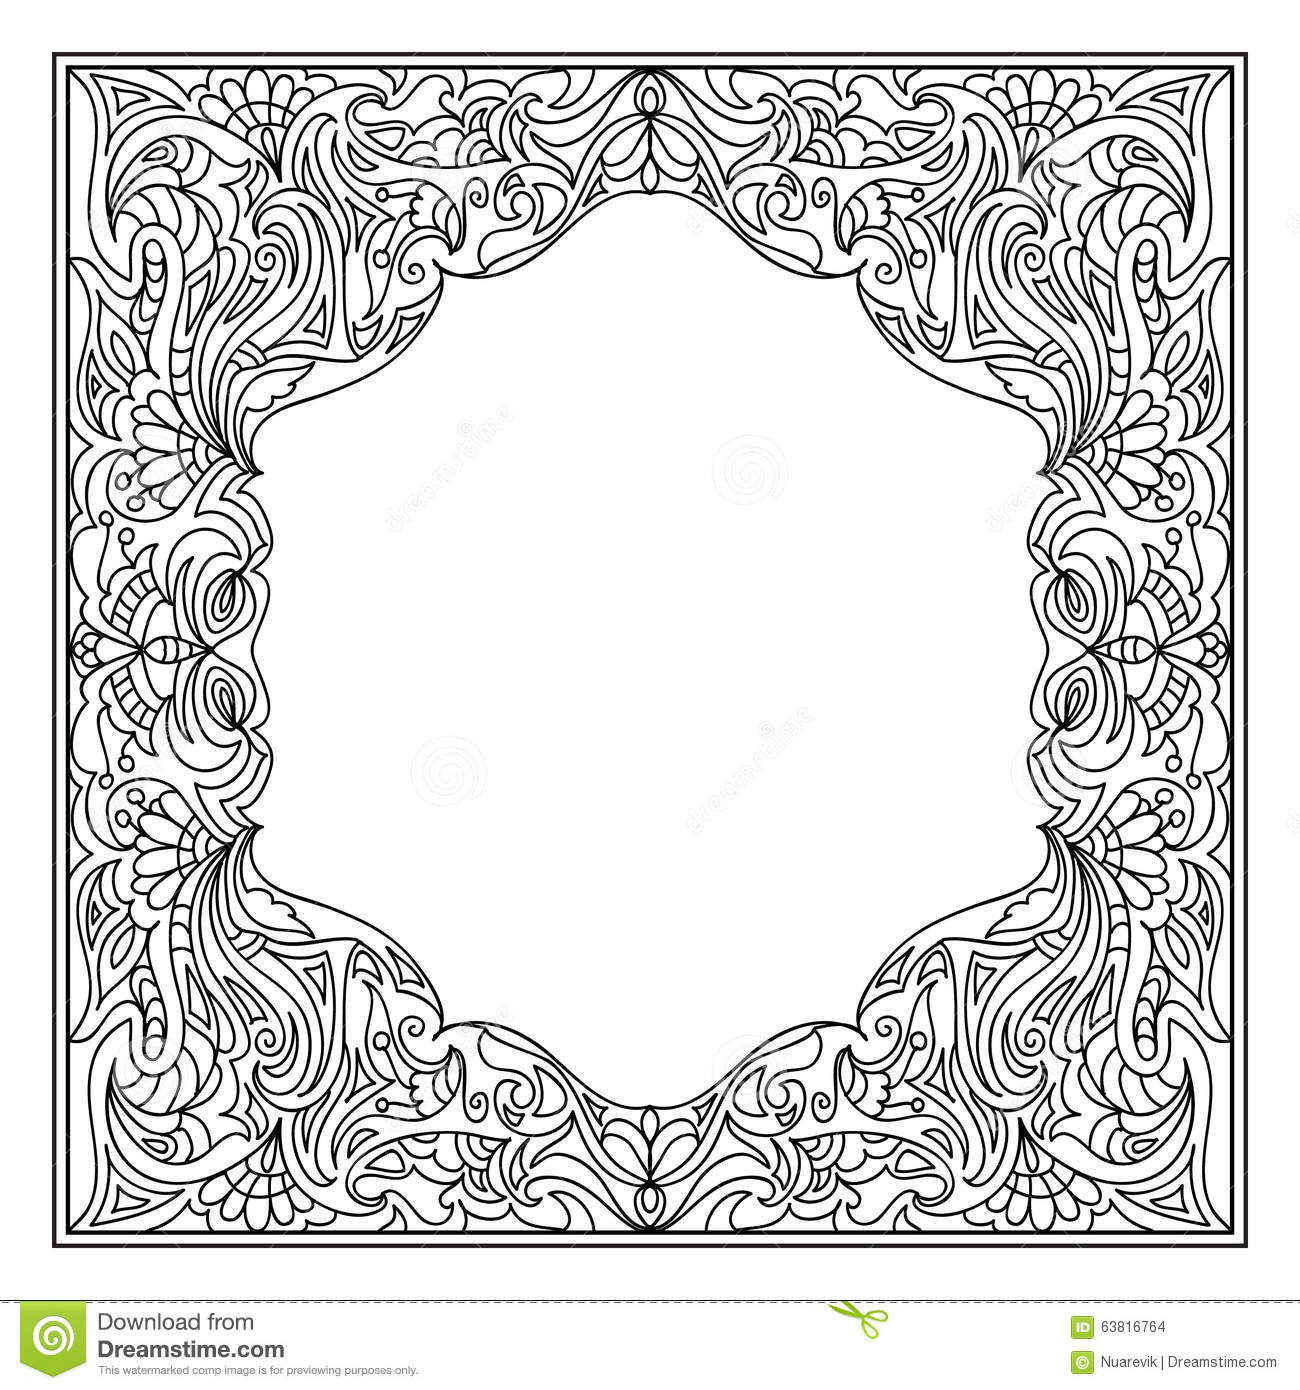 Clip Art Frame Coloring Page abstract mandala frame coloring page stock illustration image page